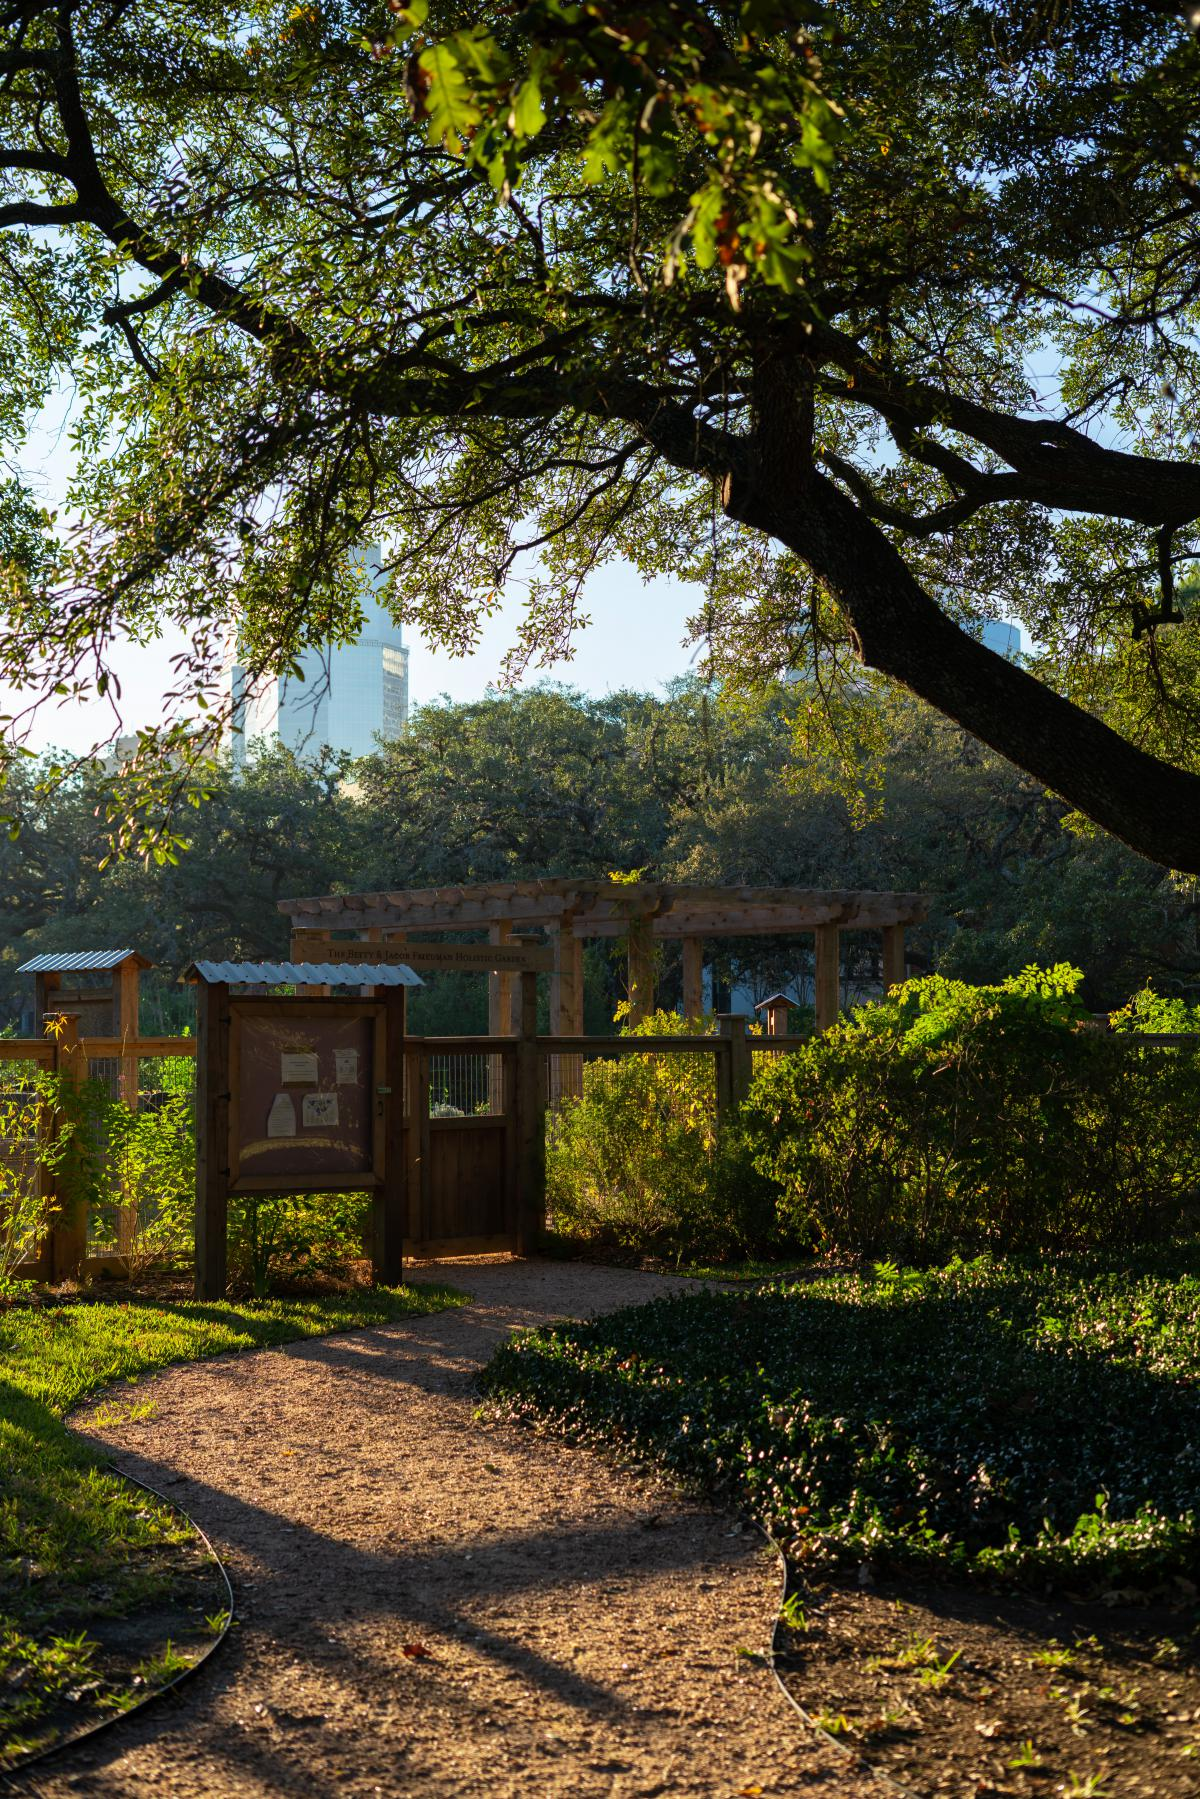 Vertical picture of the entrance to the holistic garden,